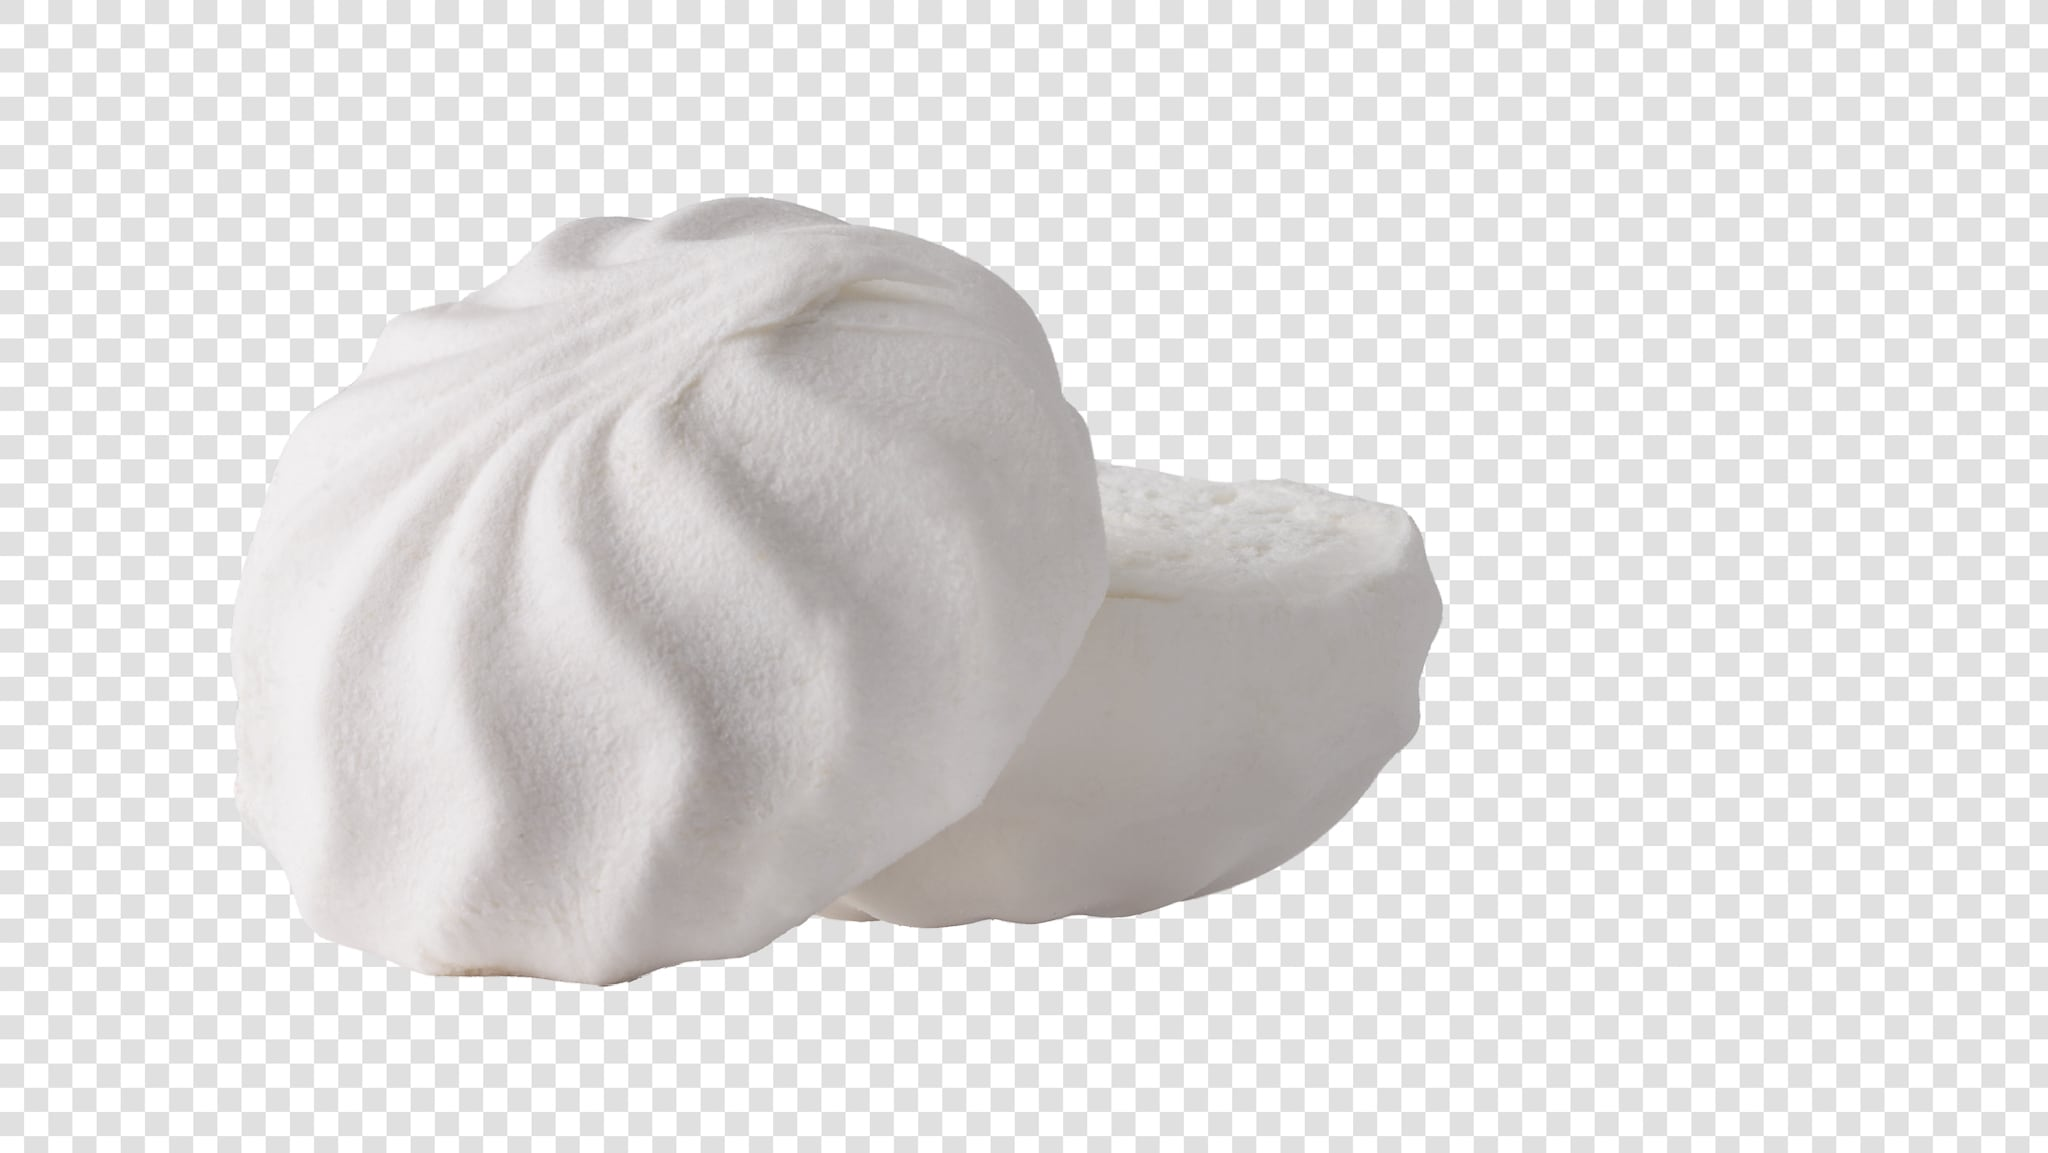 Marshmallow image with transparent background